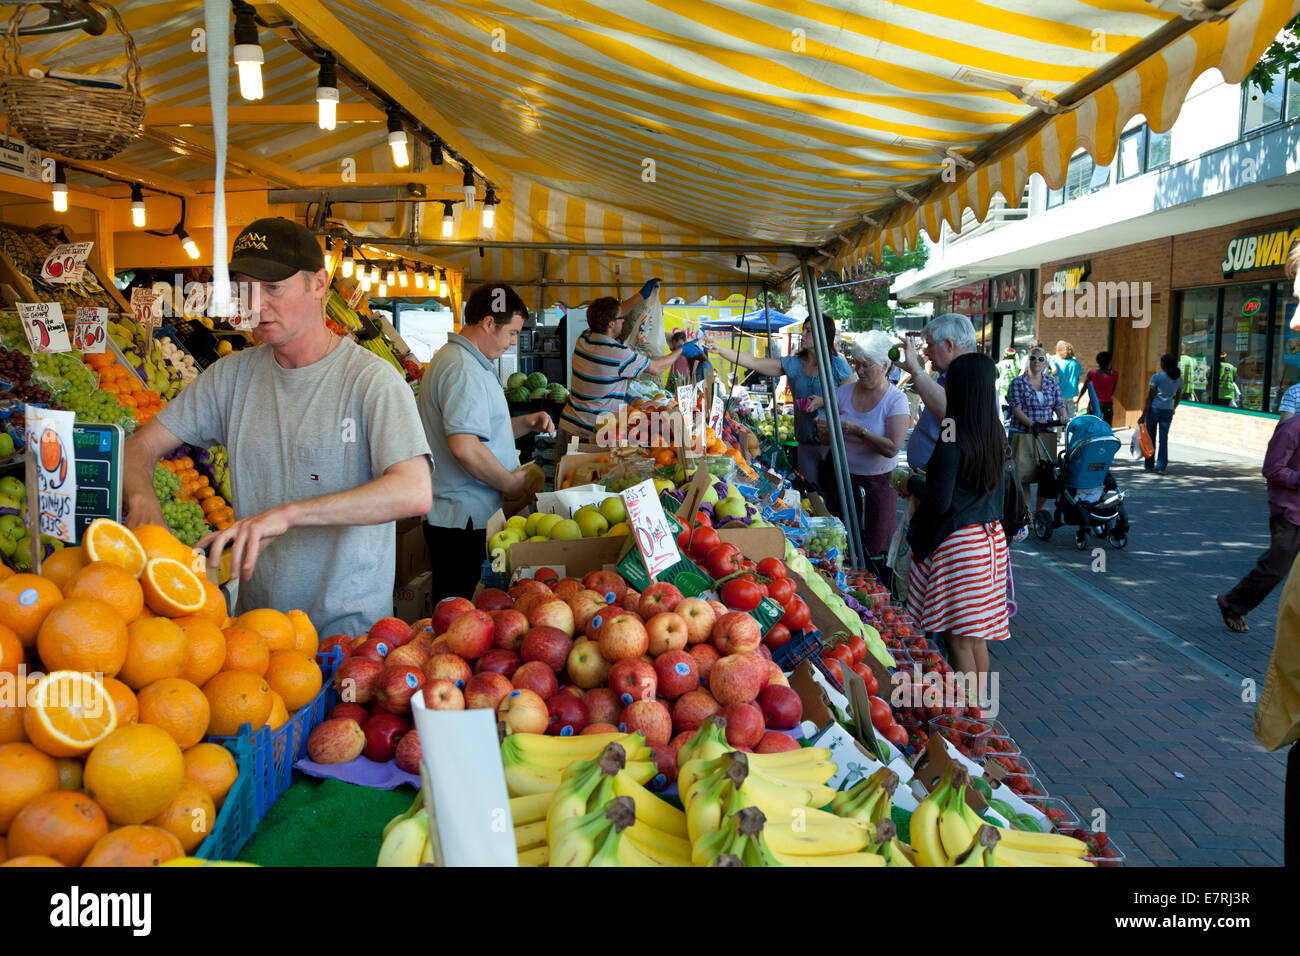 market stall fruit traders - Stock Image